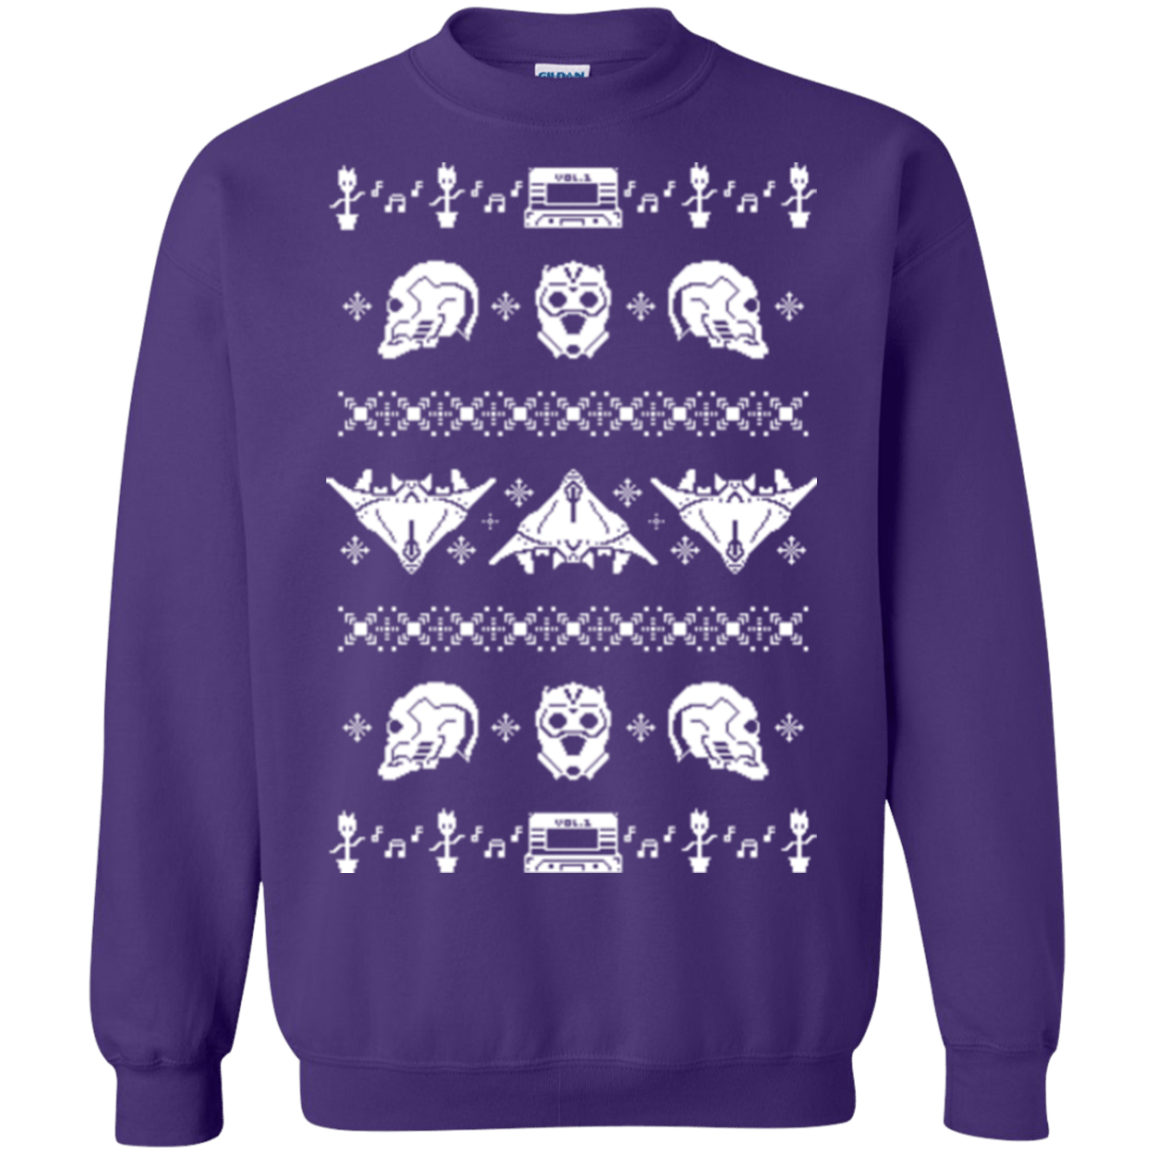 Sweatshirts Purple / Small Merry Christmas A-Holes 2 Crewneck Sweatshirt